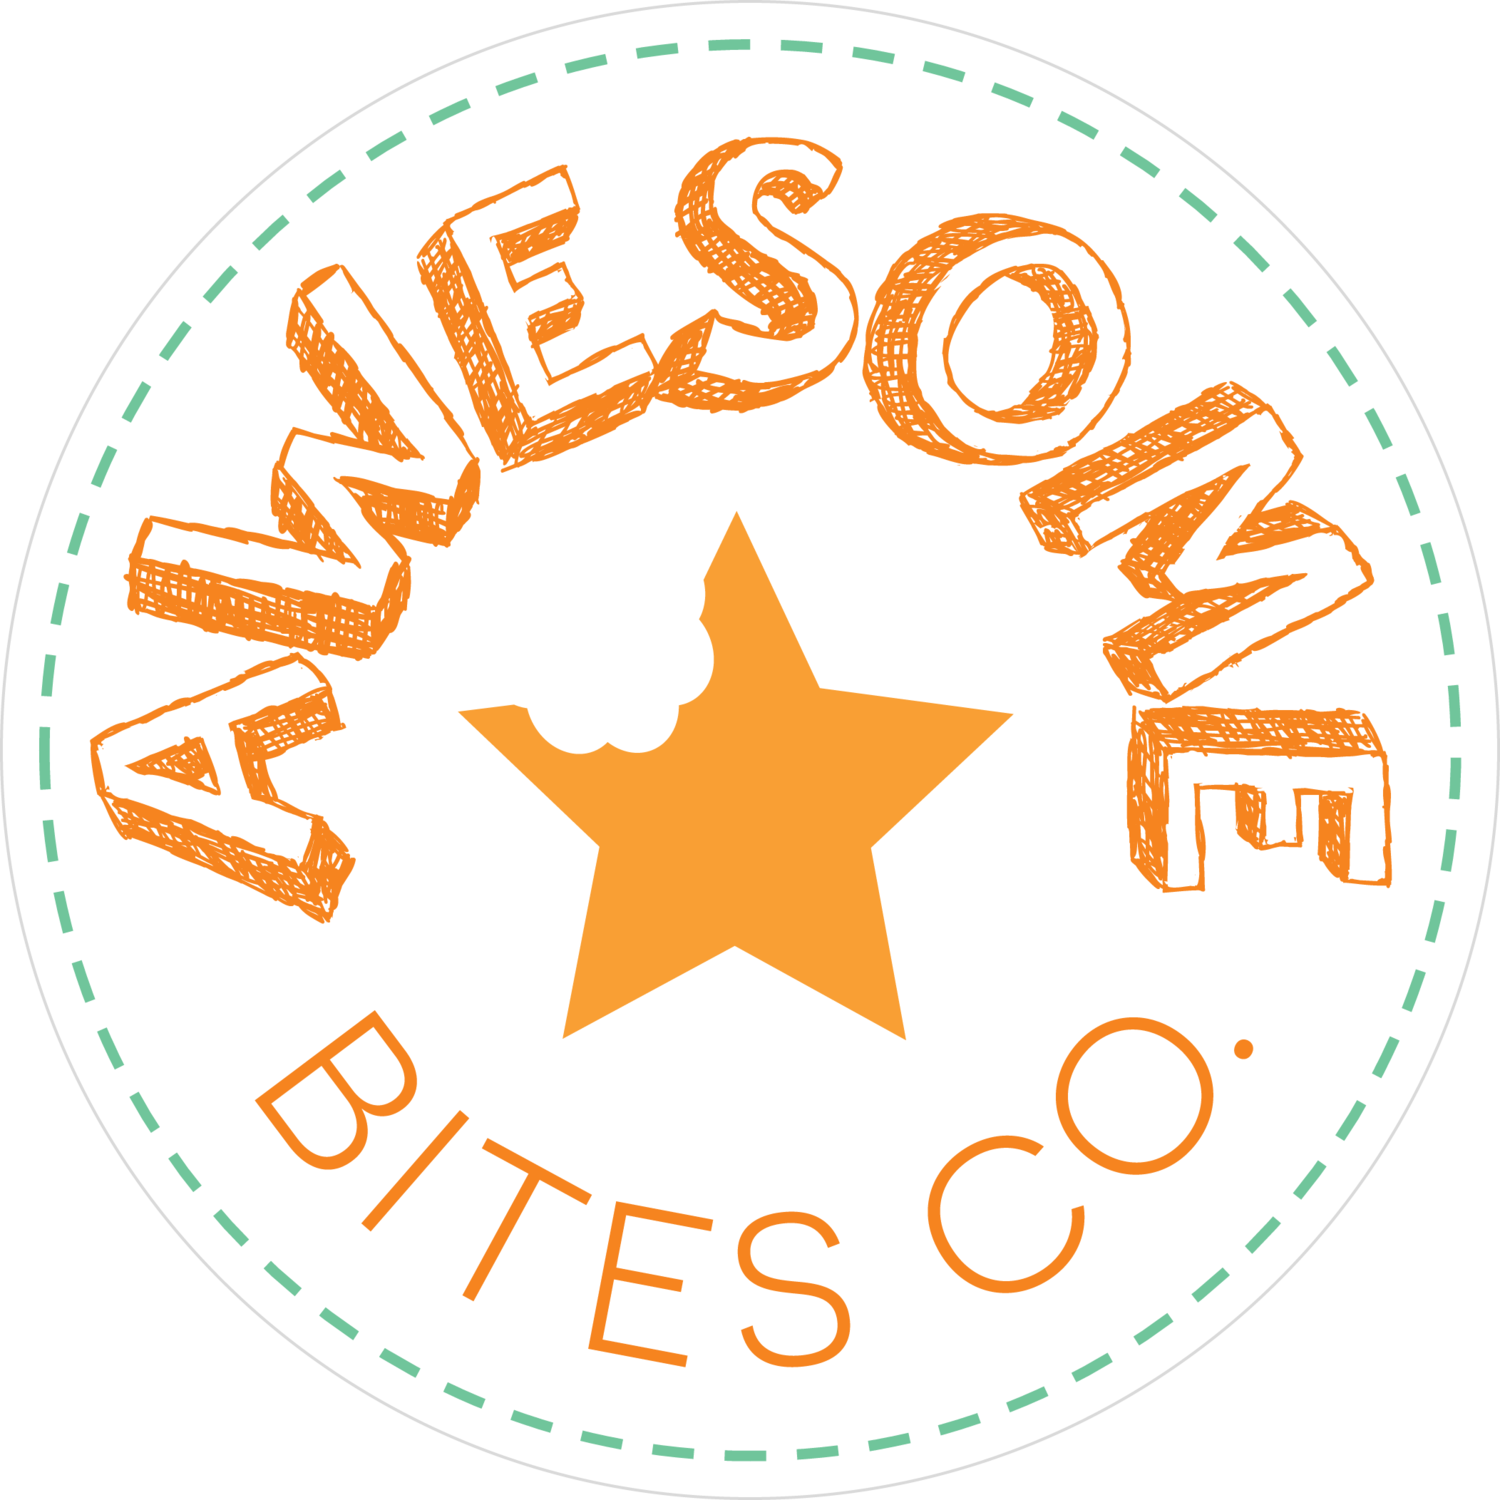 Awesome Bites Co.